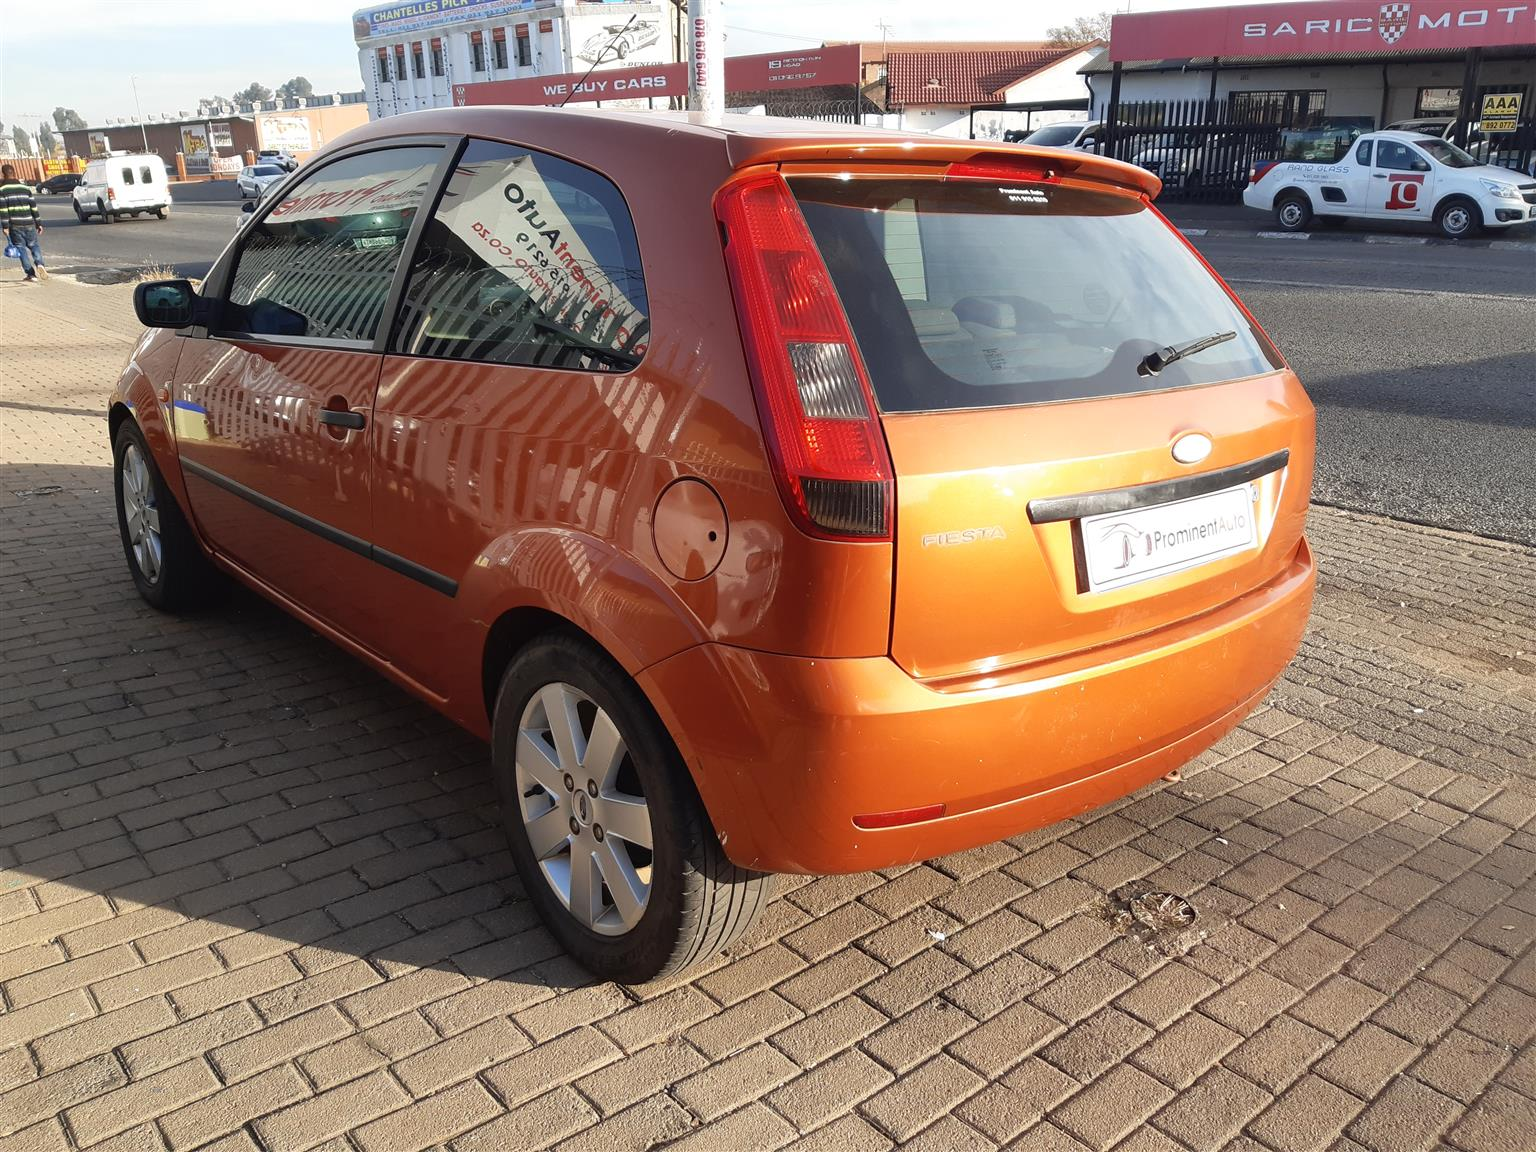 2004 Ford Fiesta hatch 5-door FIESTA 1.6i AMBIENTE 5Dr